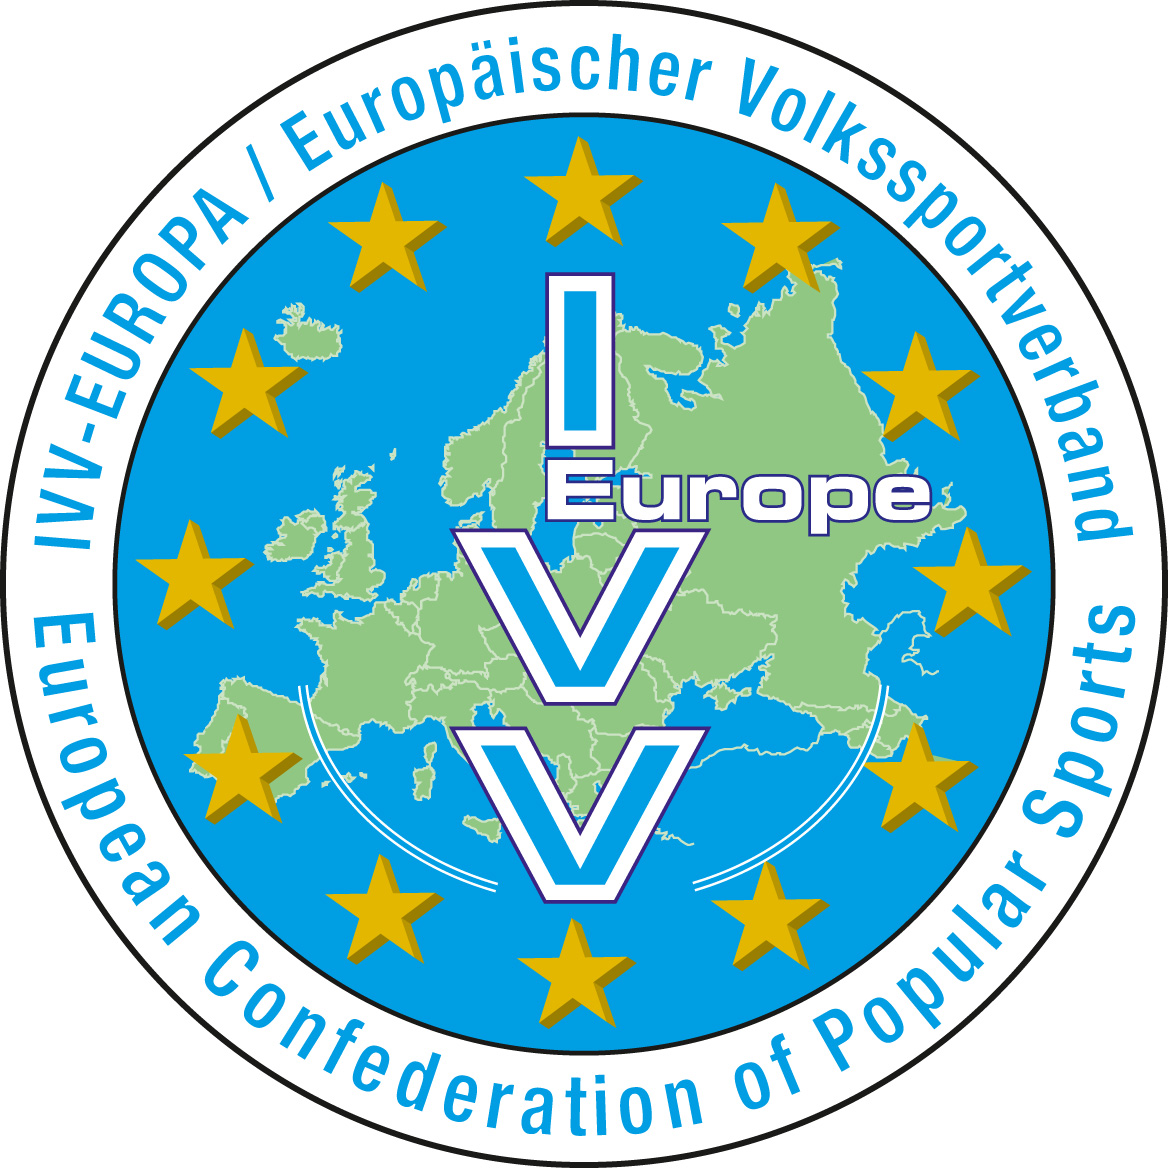 The IVV-Europe